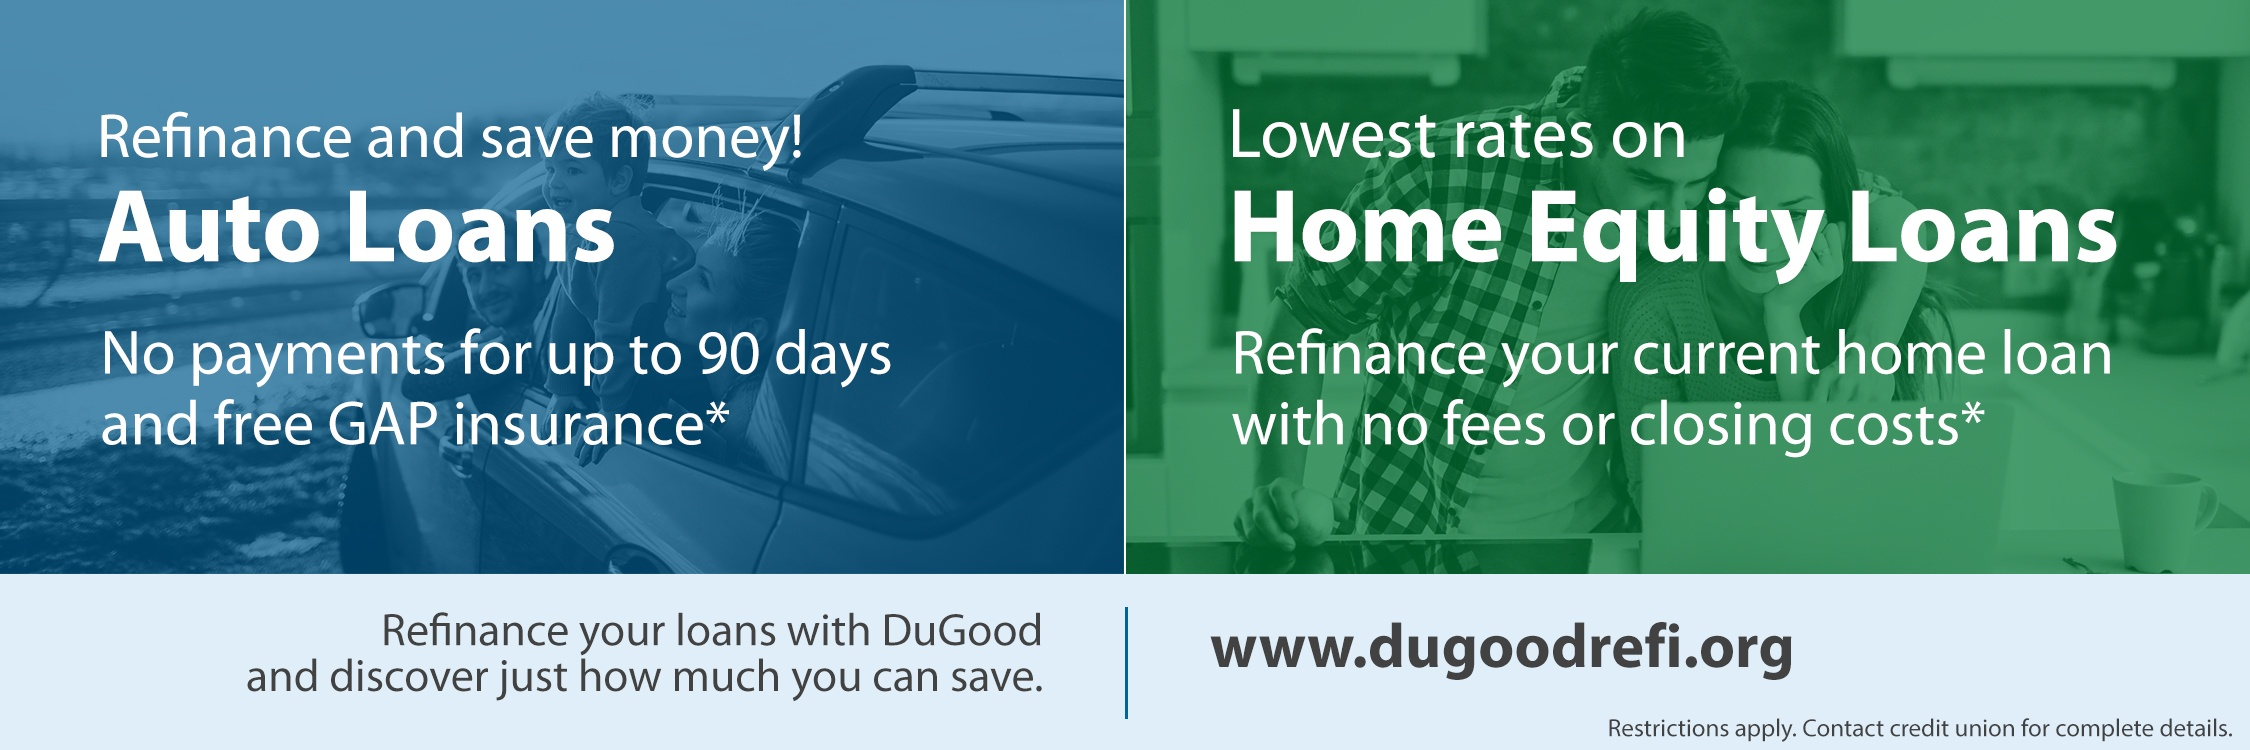 Refinance your auto loan and enjoy no payments for up to 90 days and free GAP Insurance. Refinance your current home loan with a home equity and enjoy no fees or closing costs.